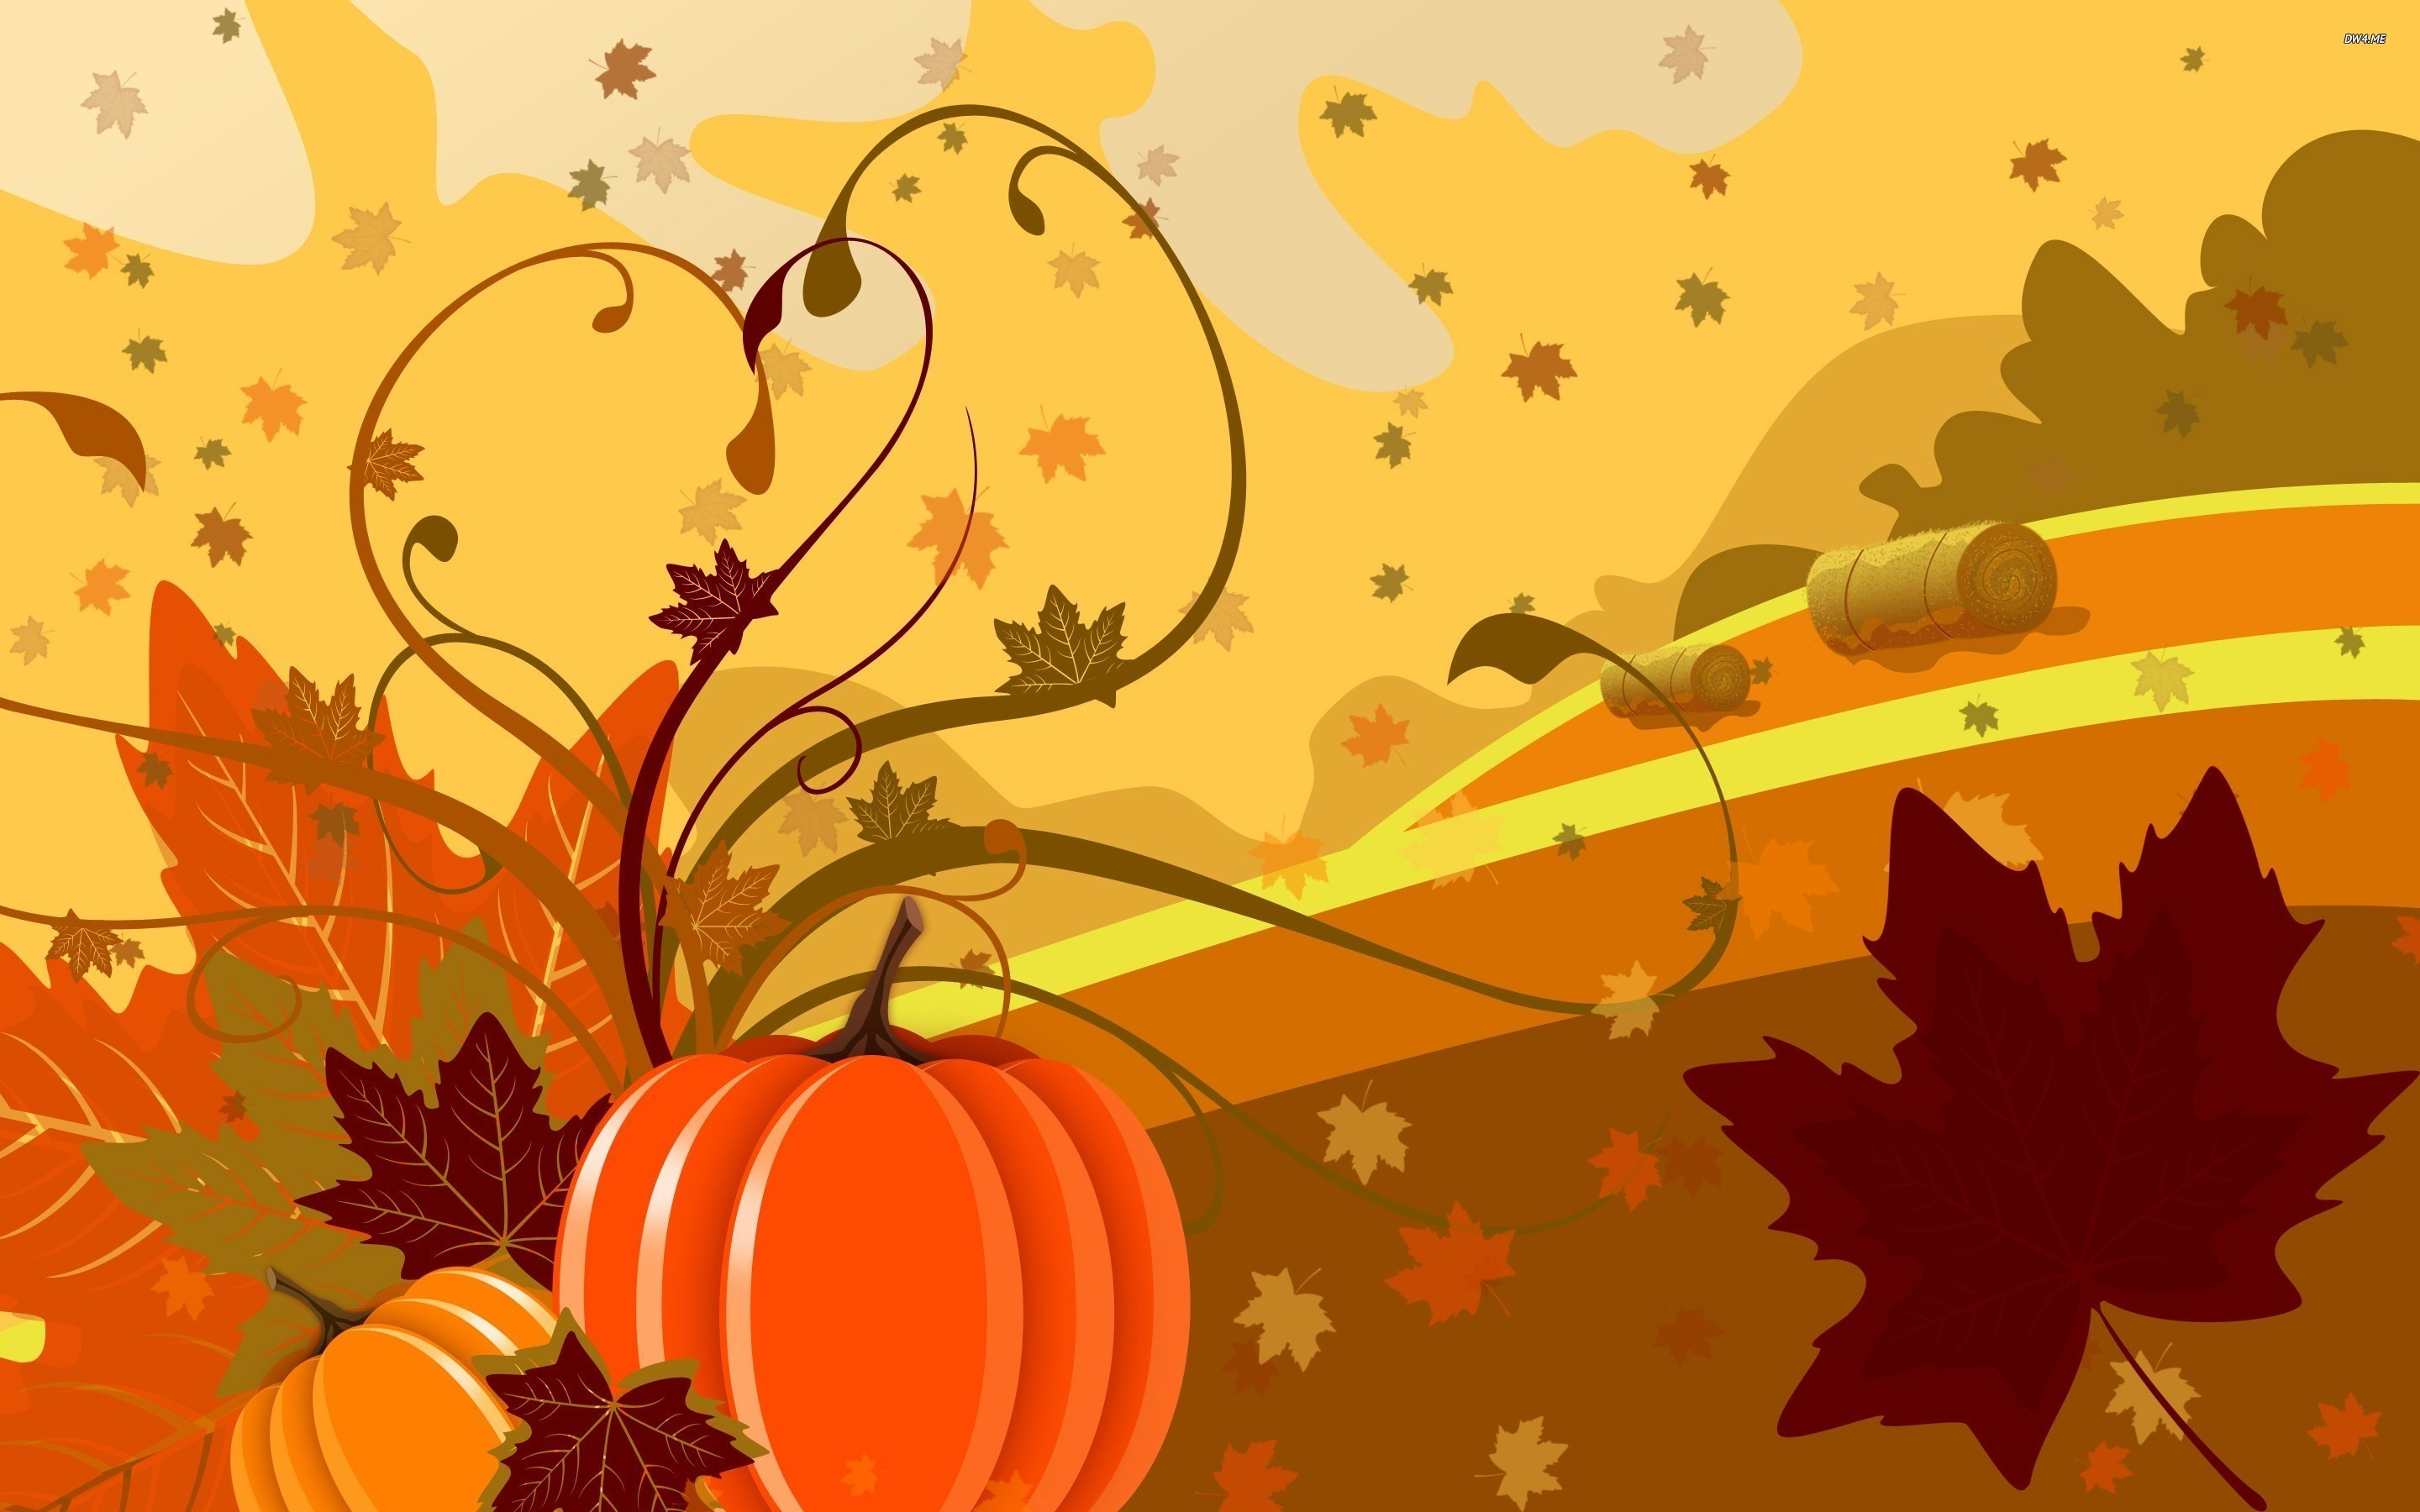 2880 x 1800 px pumpkin fall image: images, walls, pics by Adolf Chester